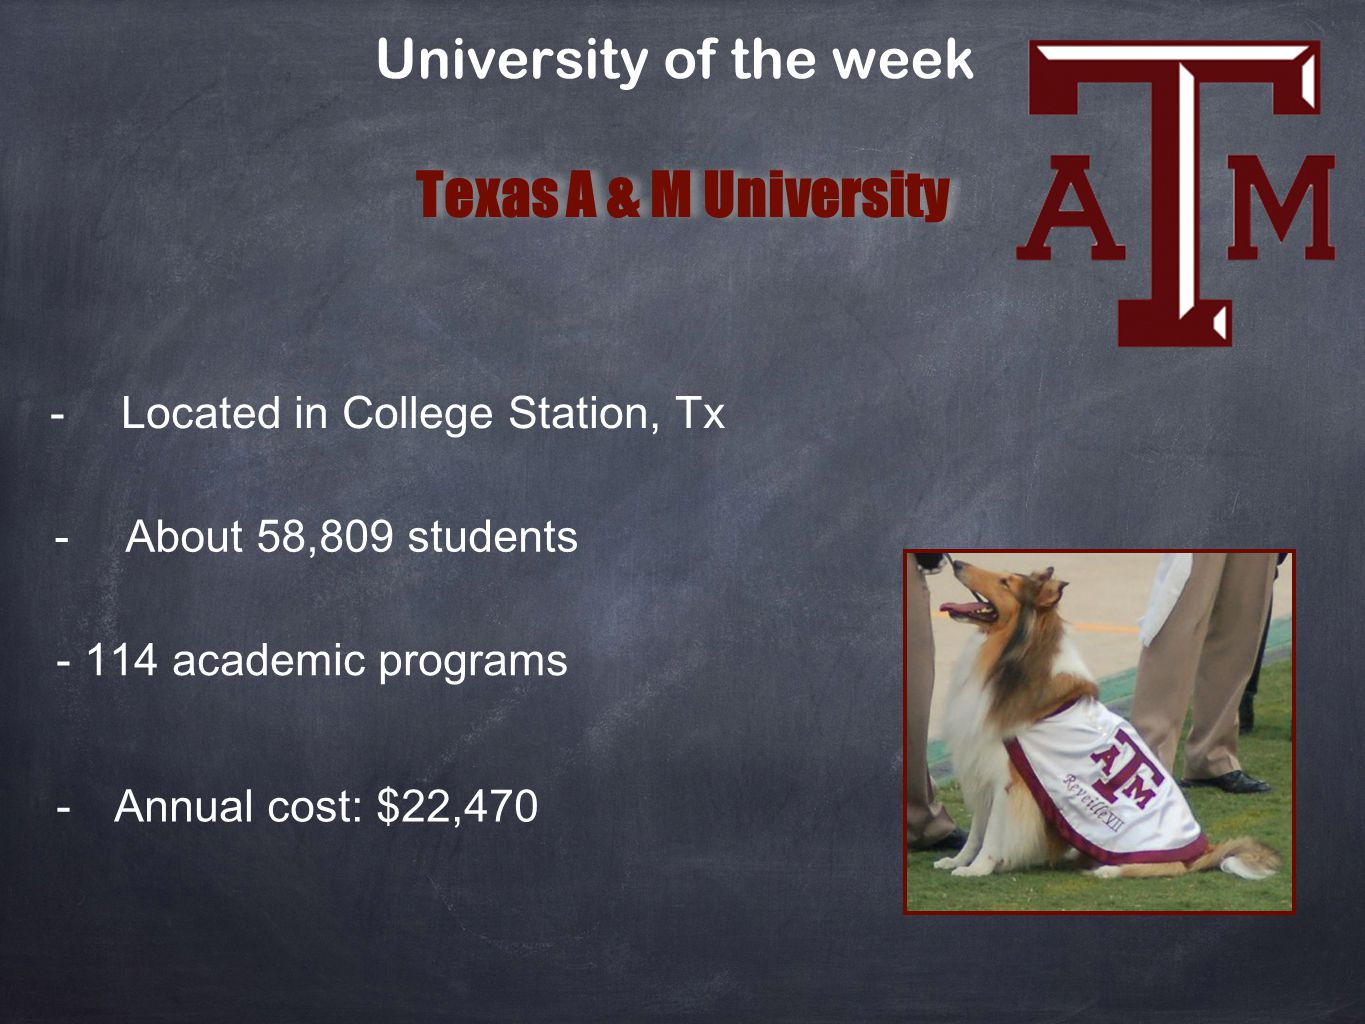 University of the week Texas A & M University Located in College Station, Tx About 58,809 students 114 academic programs Annual cost: $22,470